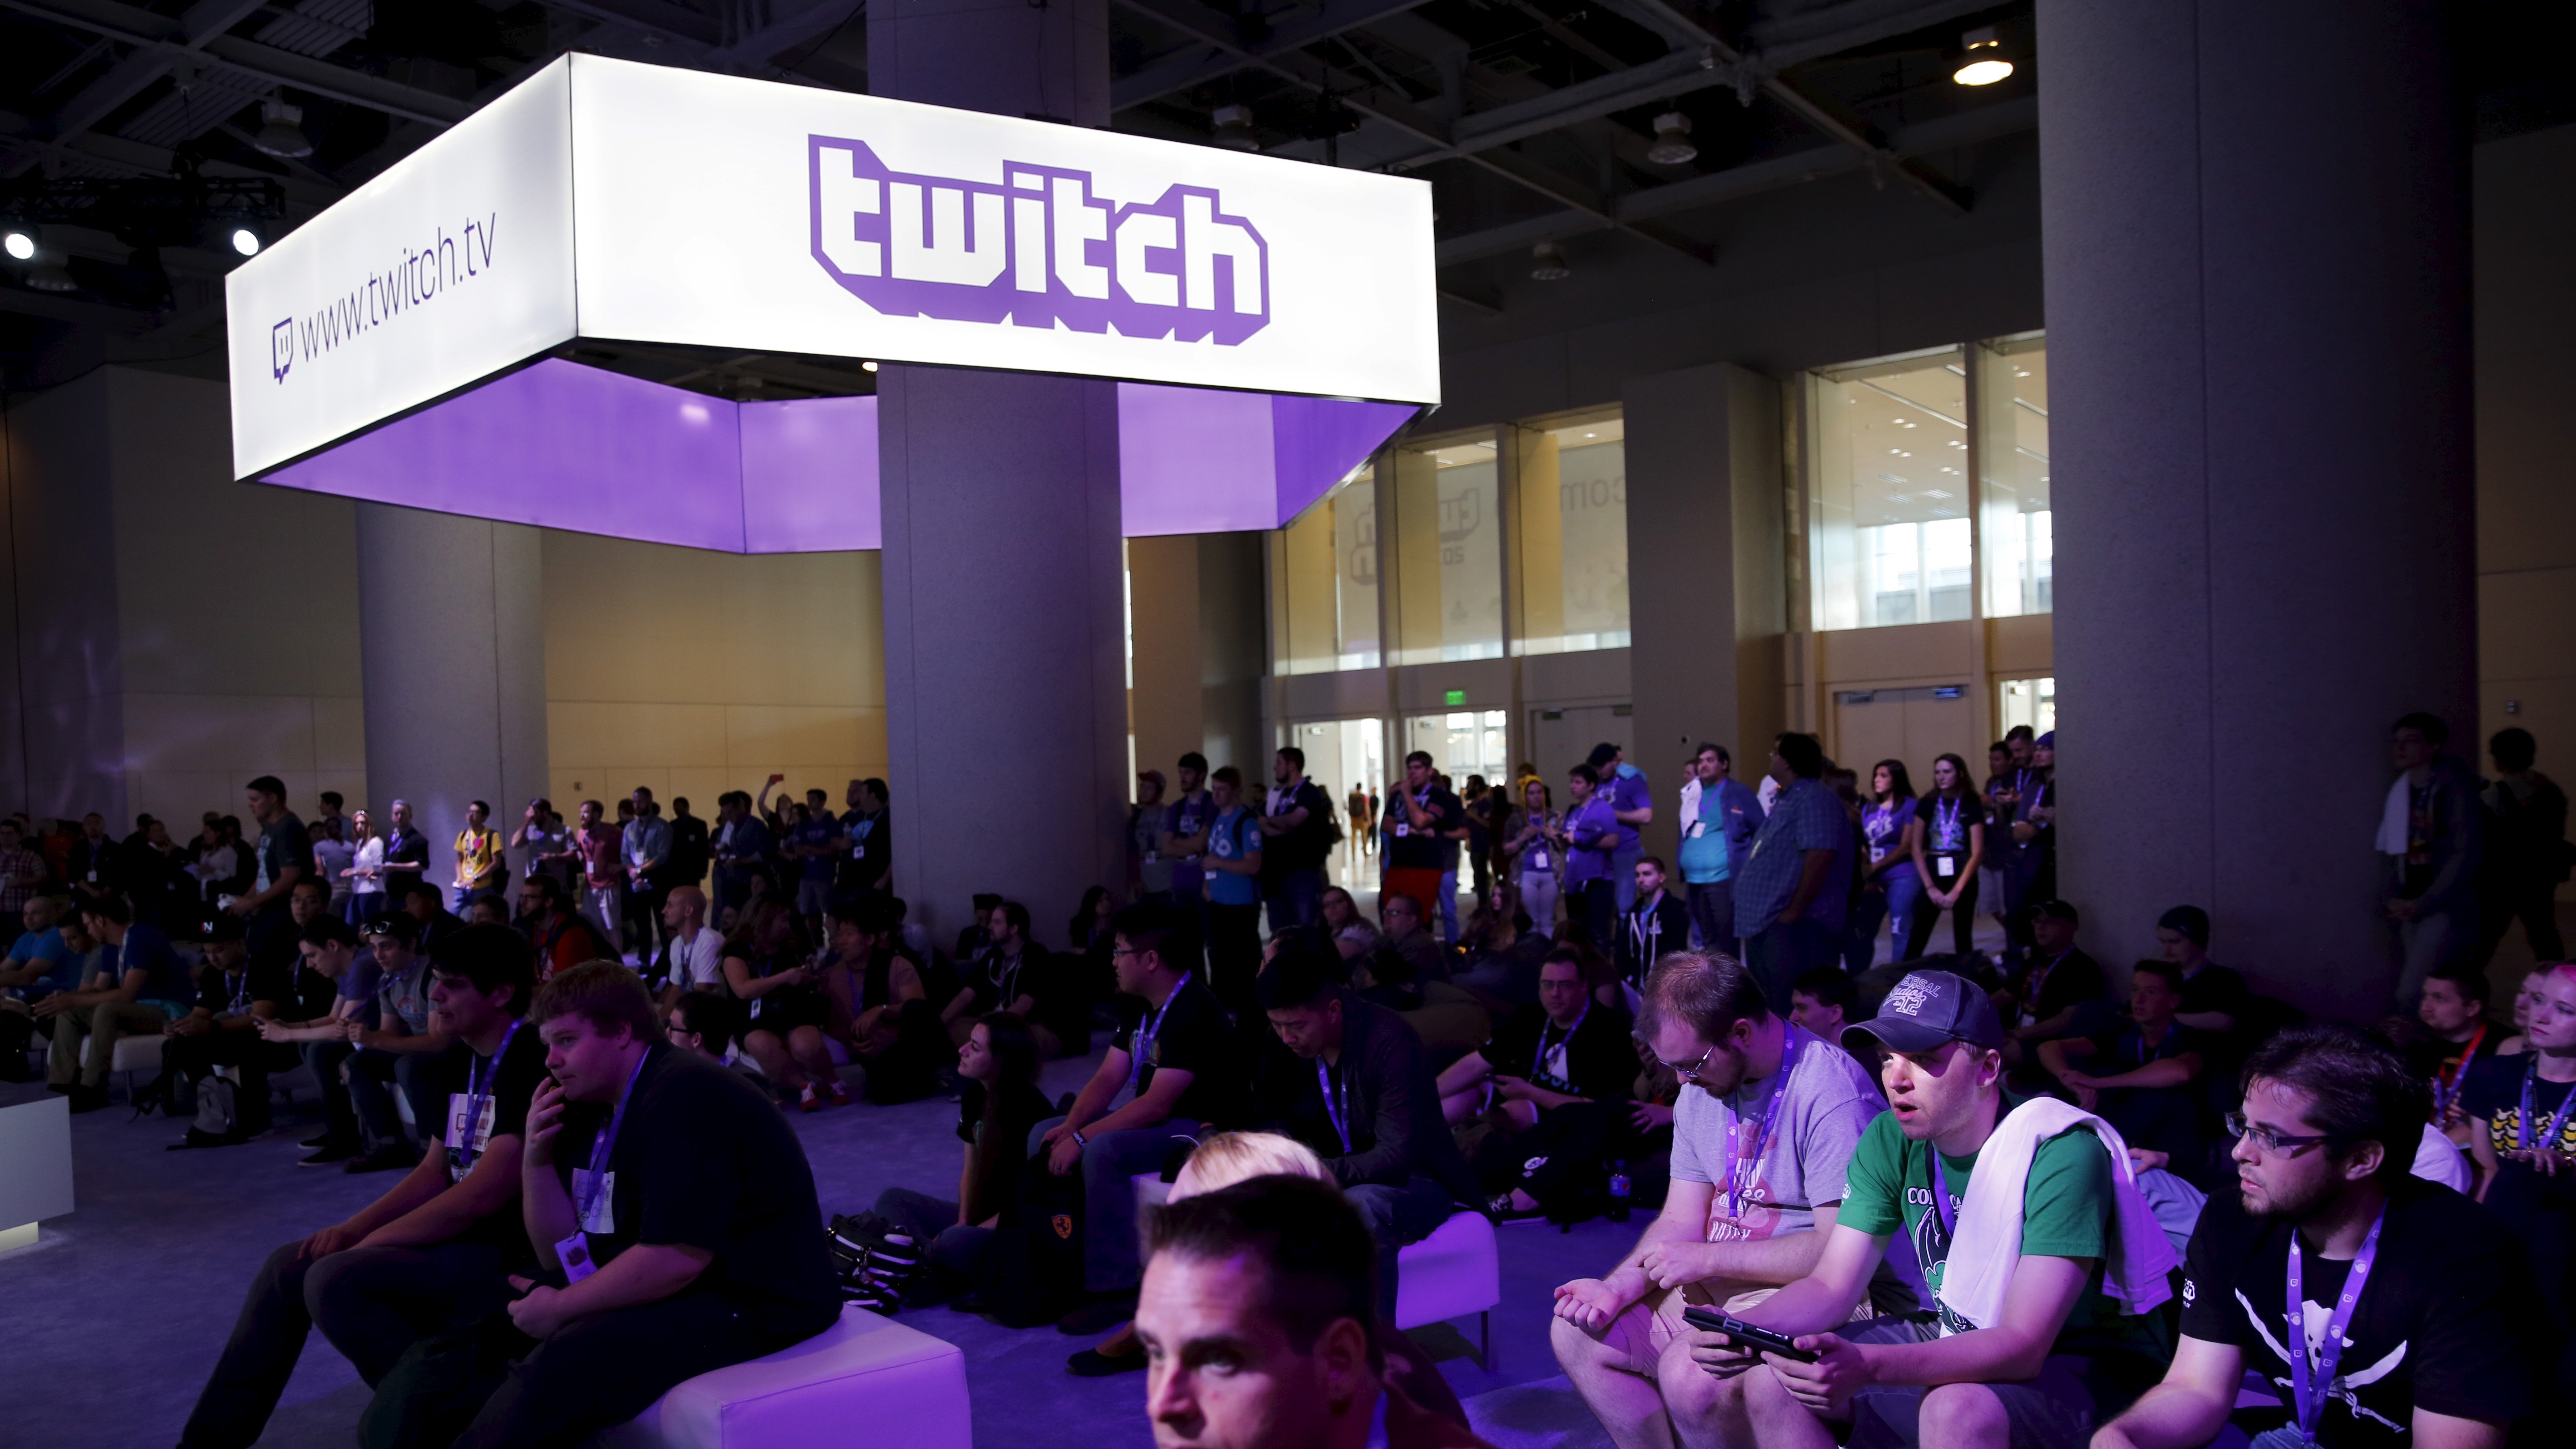 Audience members watch as panelists play video games at TwitchCon 2015 in San Francisco, California September 25, 2015. The conference features games, broadcasters and viewers, as well as gaming hardware and software. REUTERS/Robert Galbraith - RTX1SIQQ